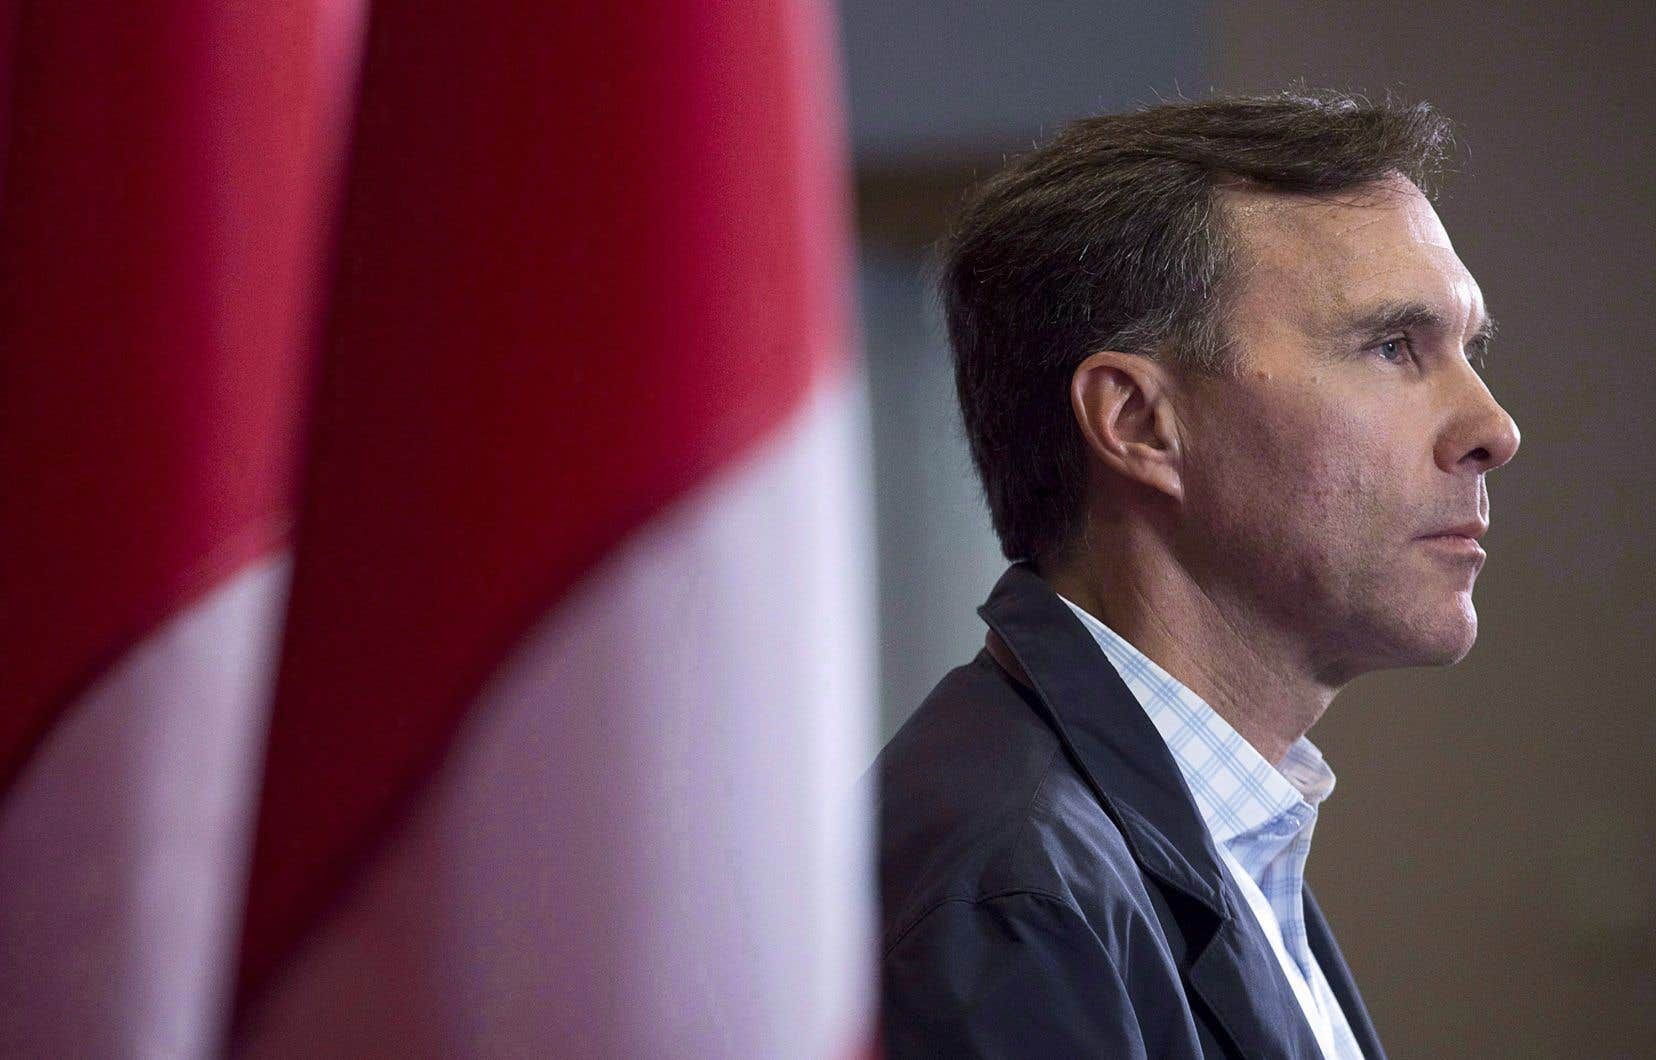 Le ministre canadien des Finances, Bill Morneau